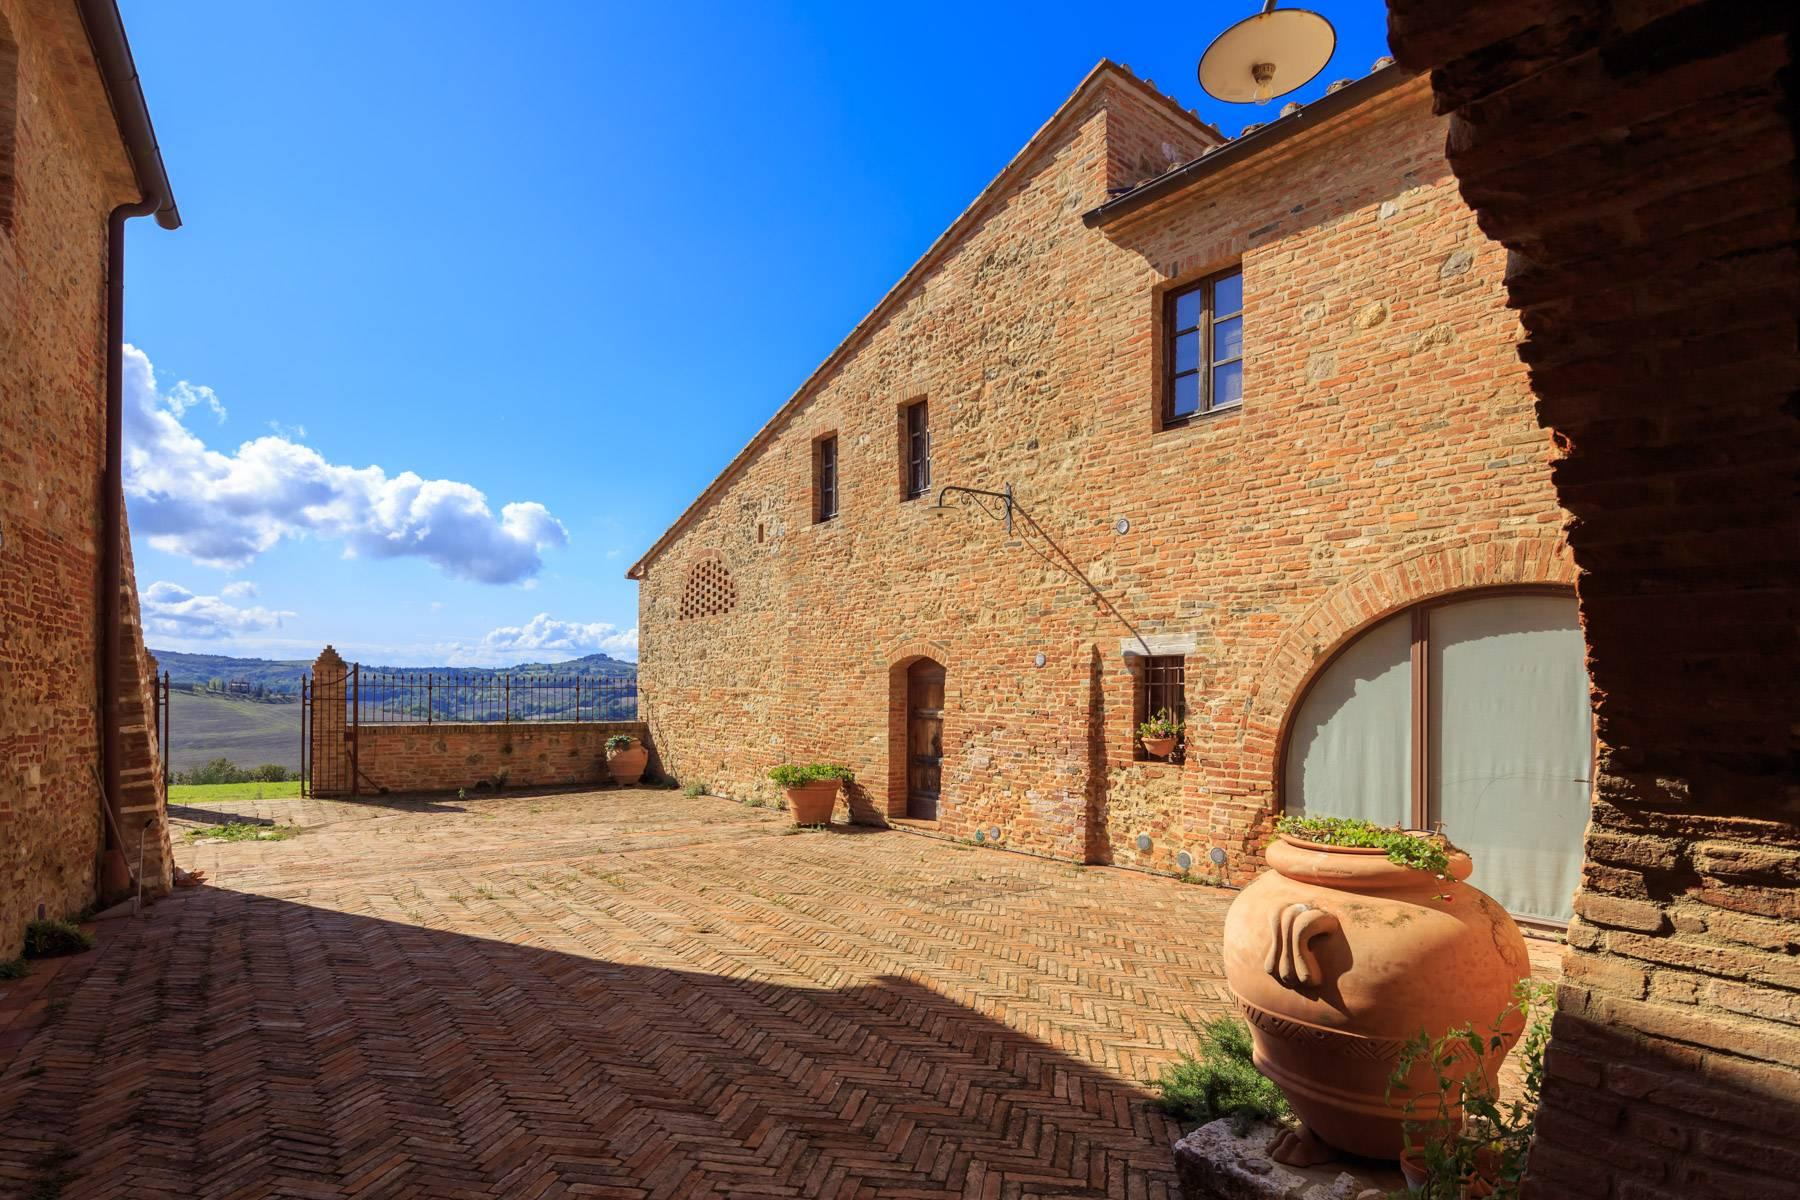 Wonderful tuscan countryhouse on the hills around Siena - 18